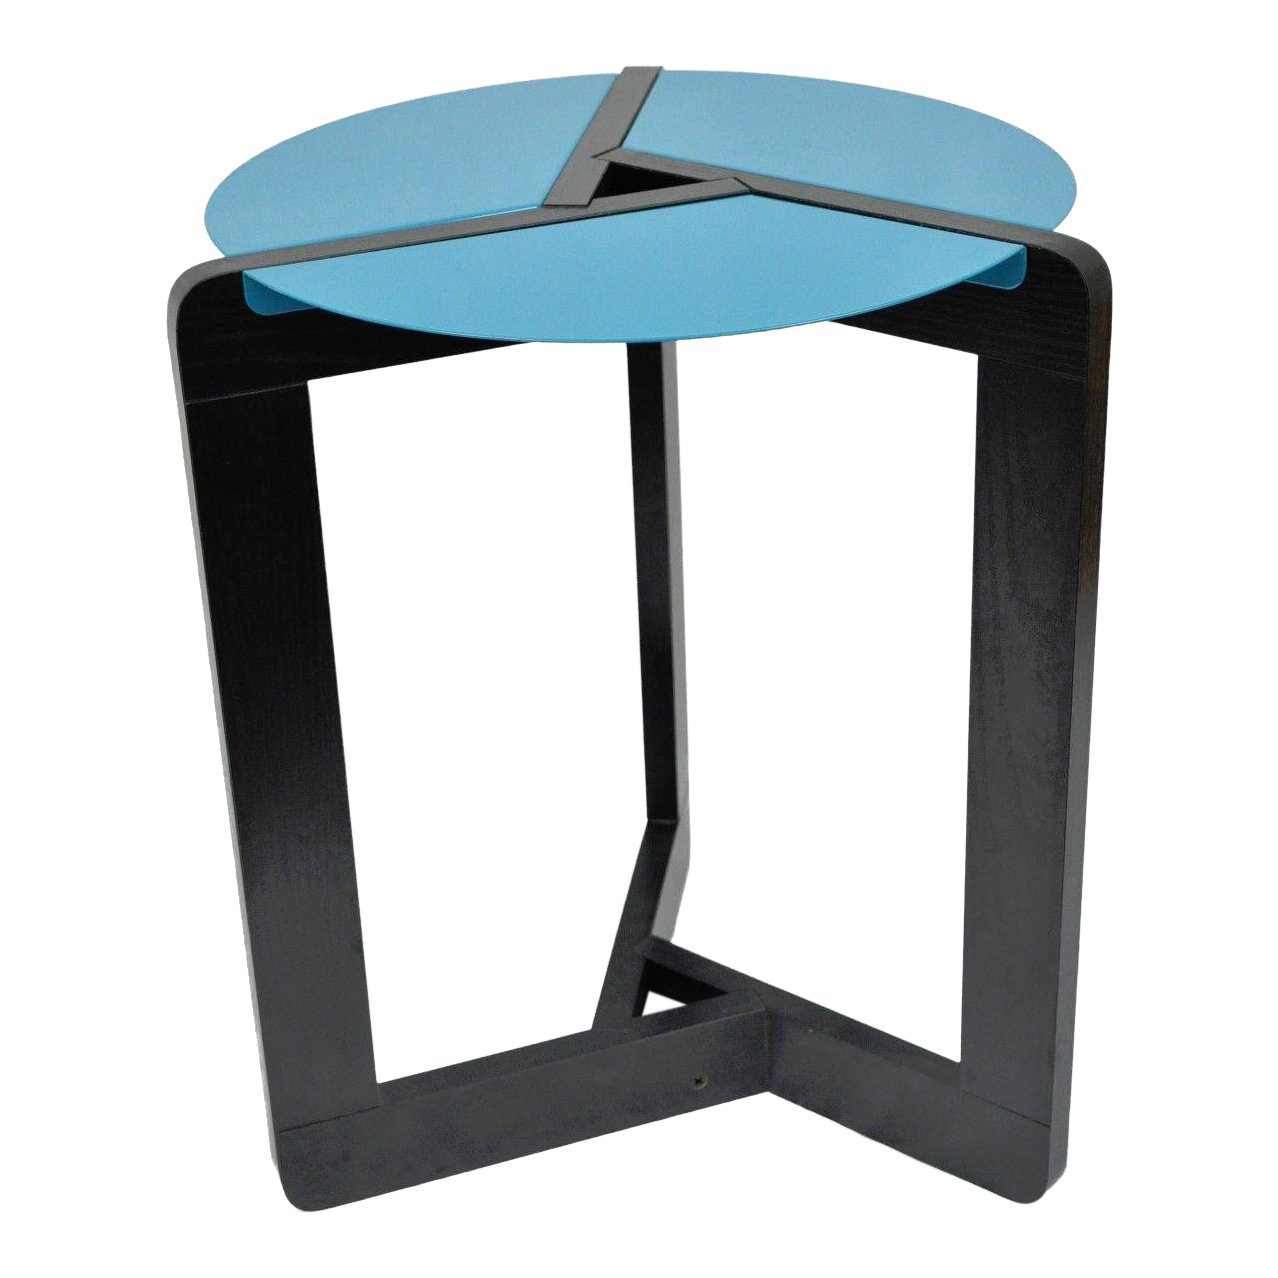 memphis style post mid century modern black blue metal round side and accent table chairish sofa mirror red home accessories nightstands clearance stone top coffee sets glass